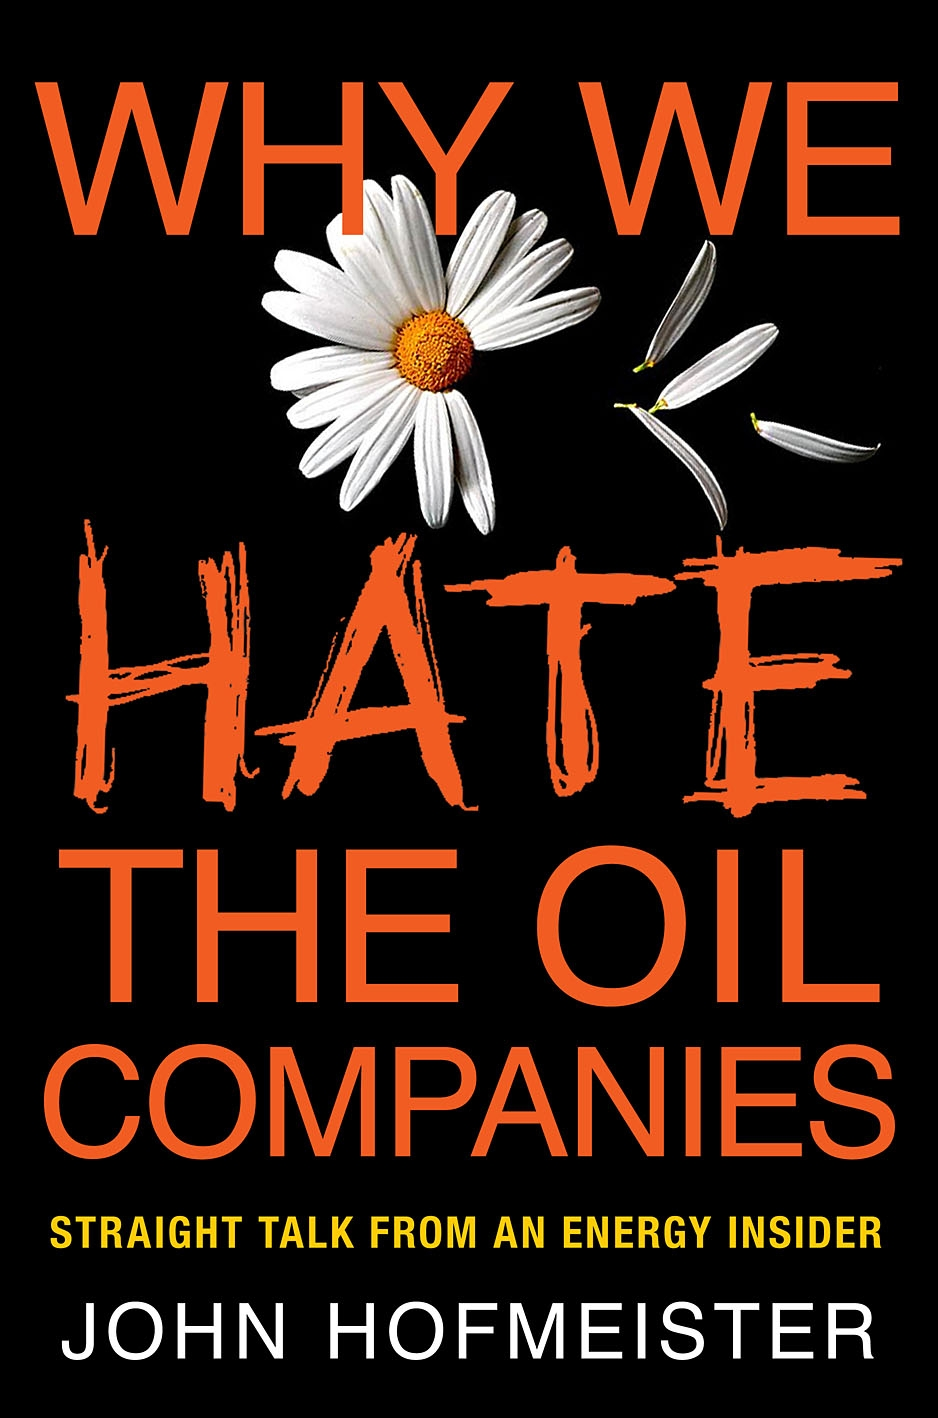 why-we-hate-the-oil-companies-cover.JPG